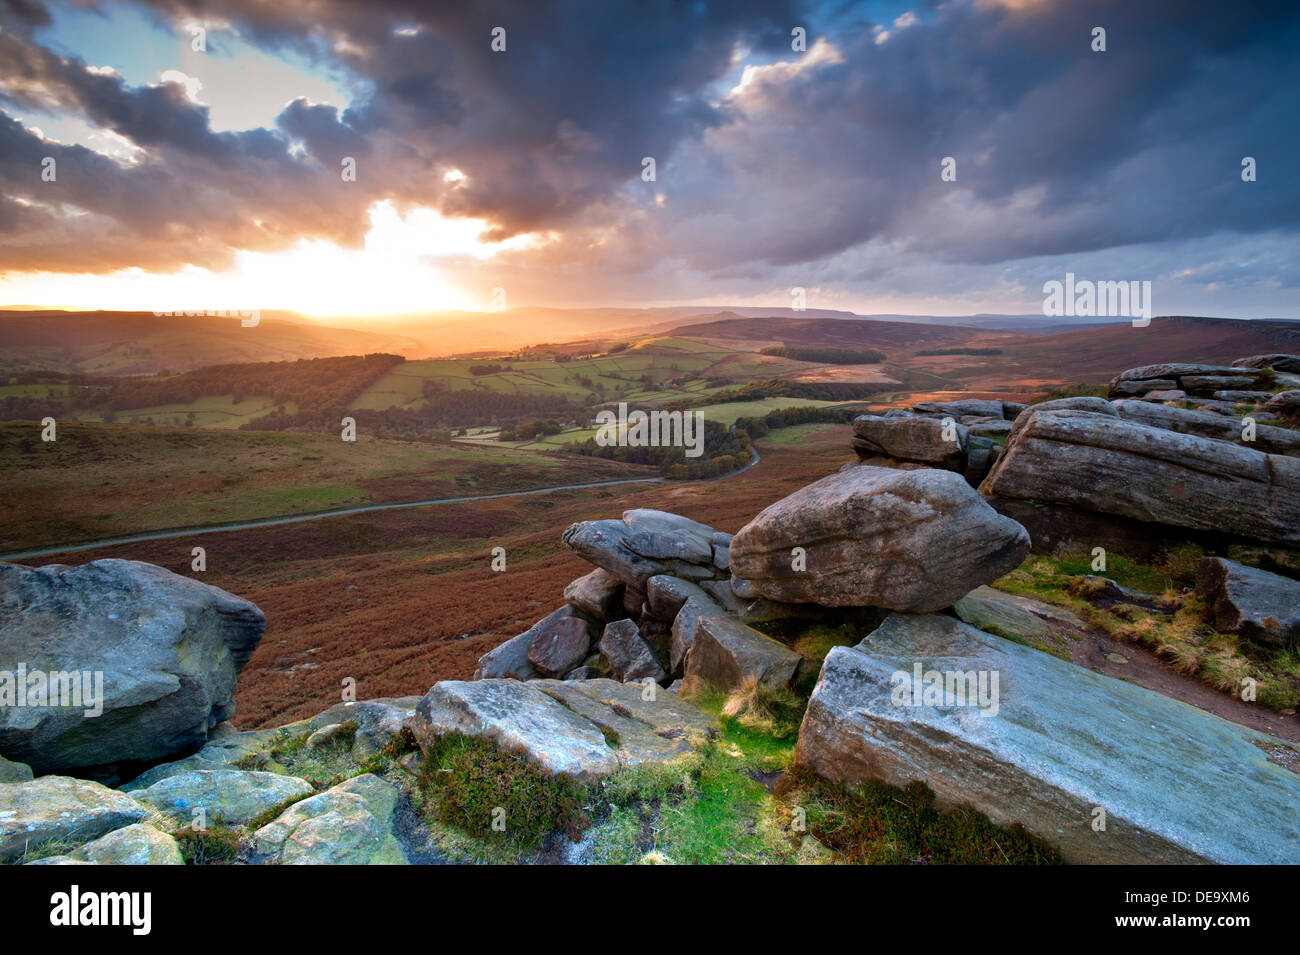 Sunset Over Stanage Edge, Near Hathersage, Peak District National Park, Derbyshire, England, UK - Stock Image